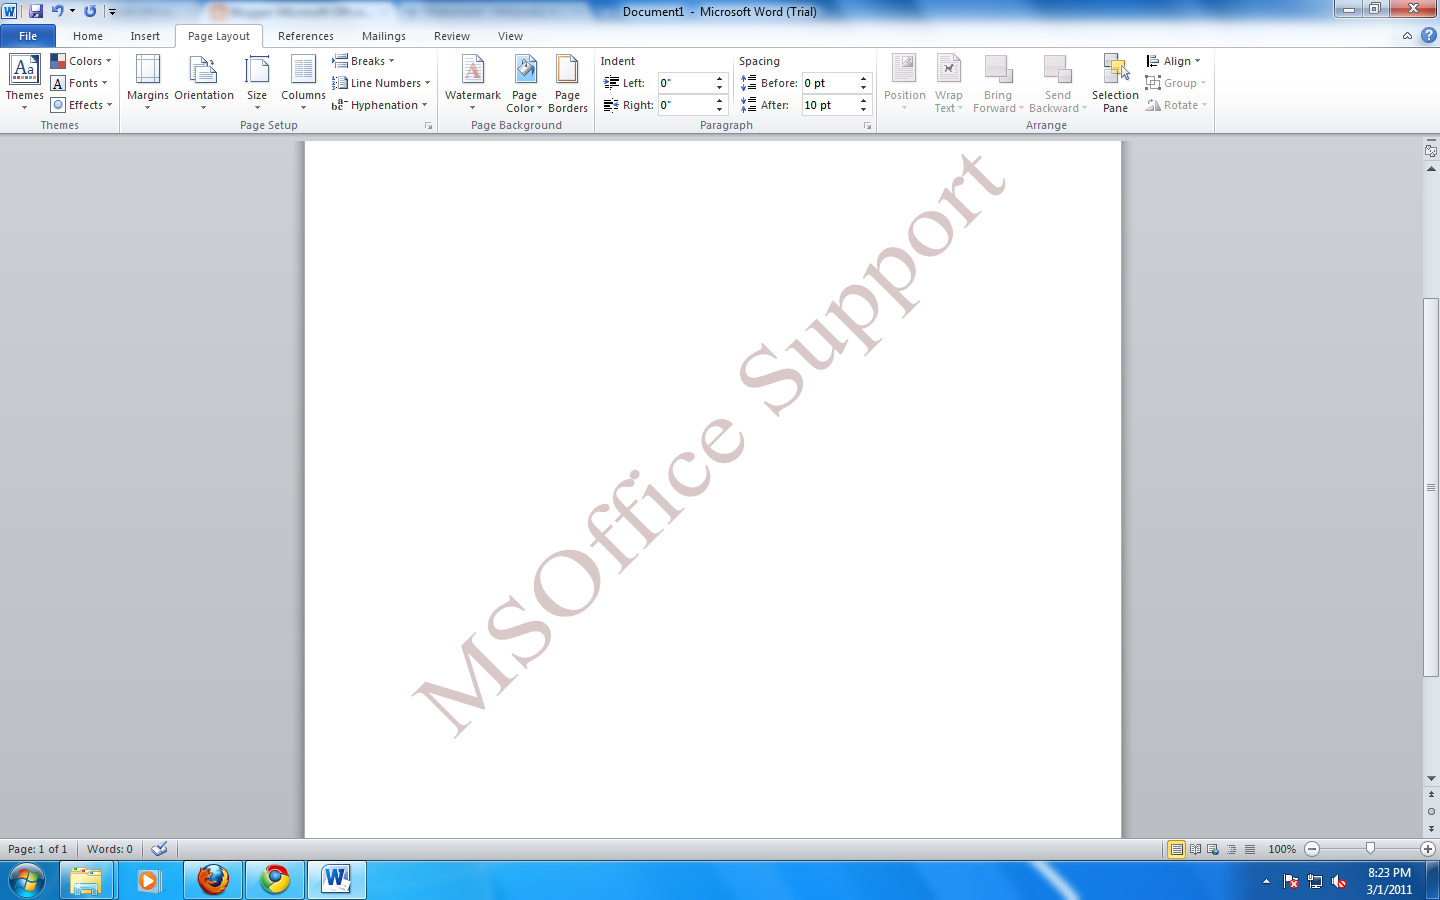 watermark in microsoft word microsoft office support 4 click ok to get the desired watermark